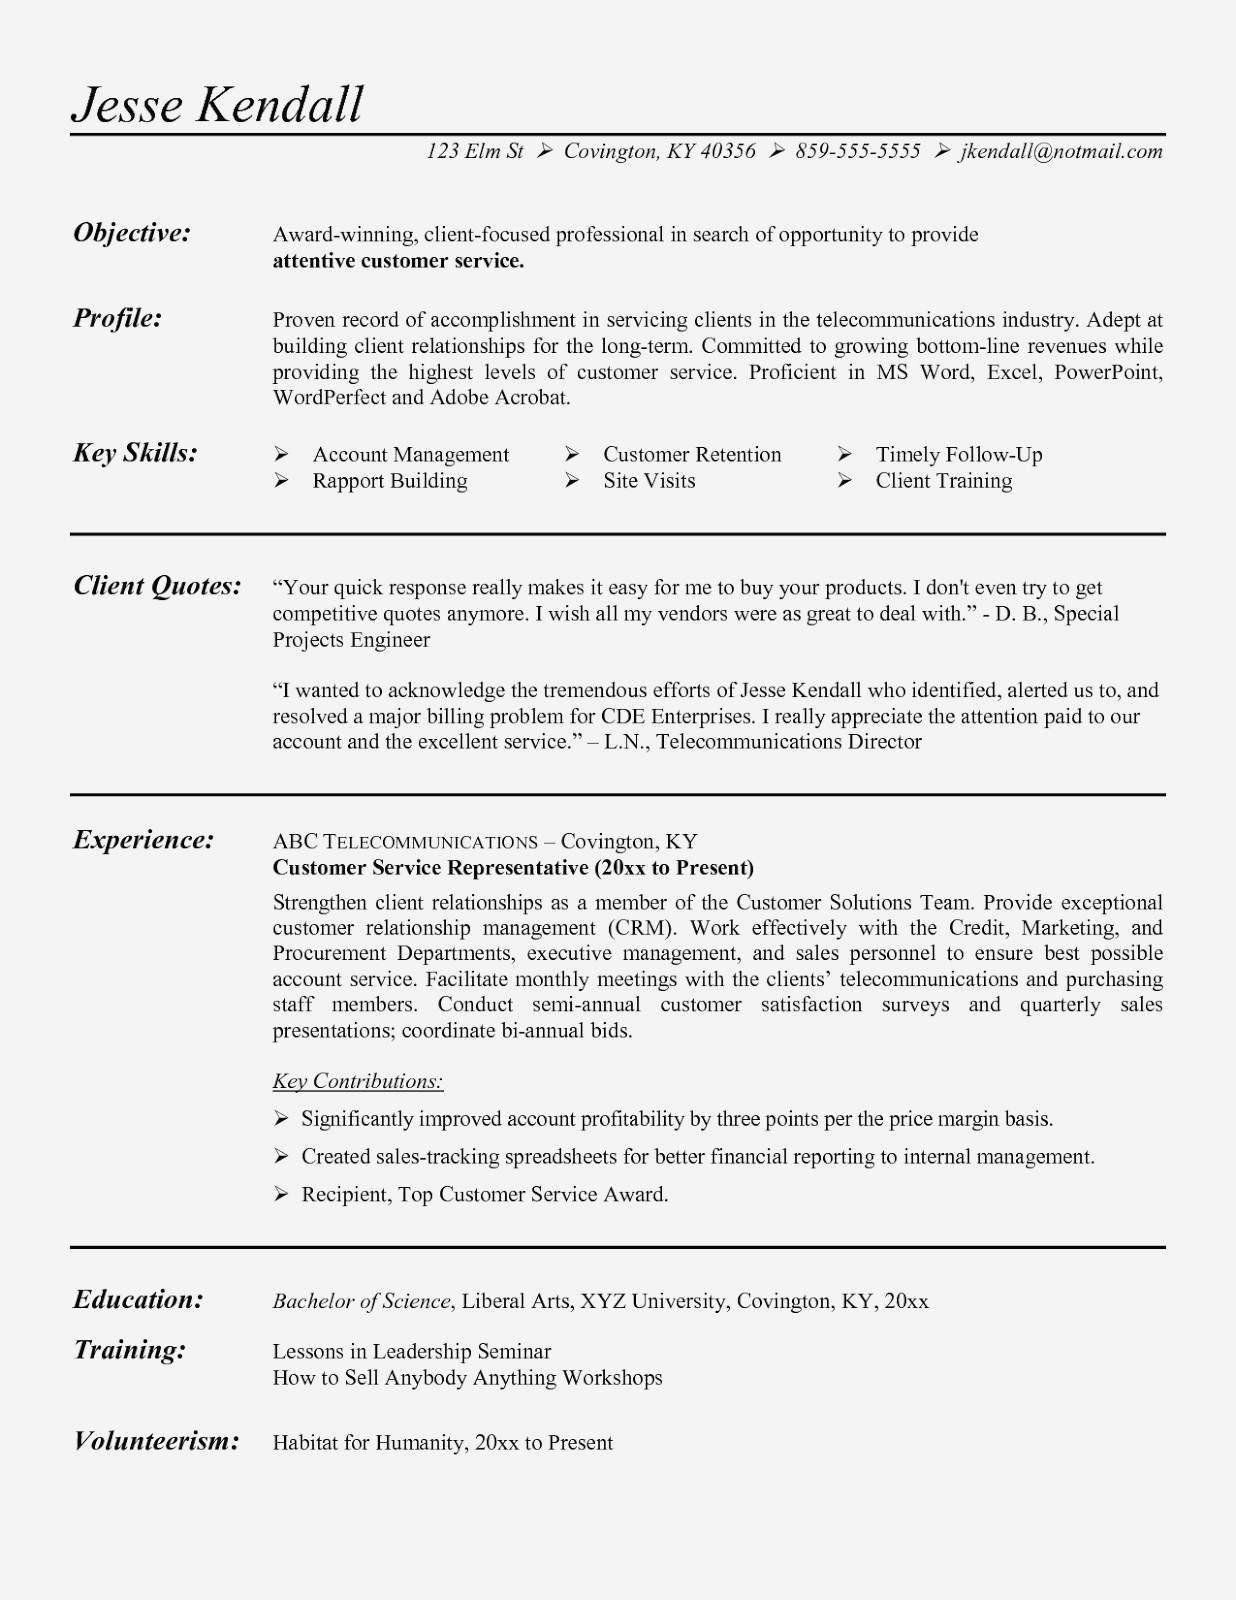 Best Paper For Resume Best Of Resume Sample In Pdf Valid Best Resume Samples New Re In 2020 Resume Objective Examples Resume Objective Sample Good Objective For Resume